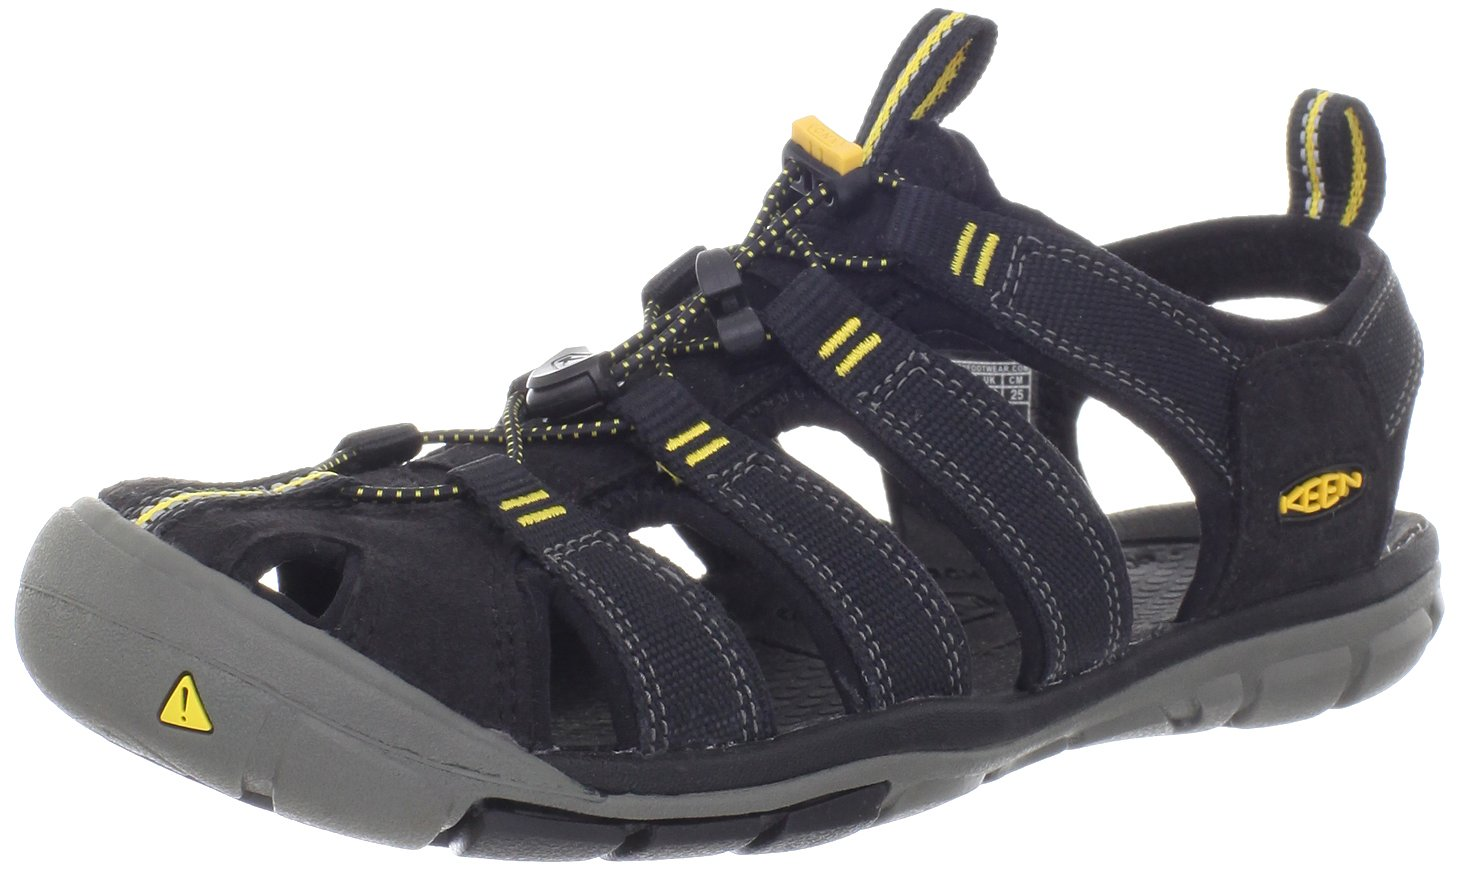 KEEN Women's Clearwater CNX Sandal,Black/Yellow,5.5 M US